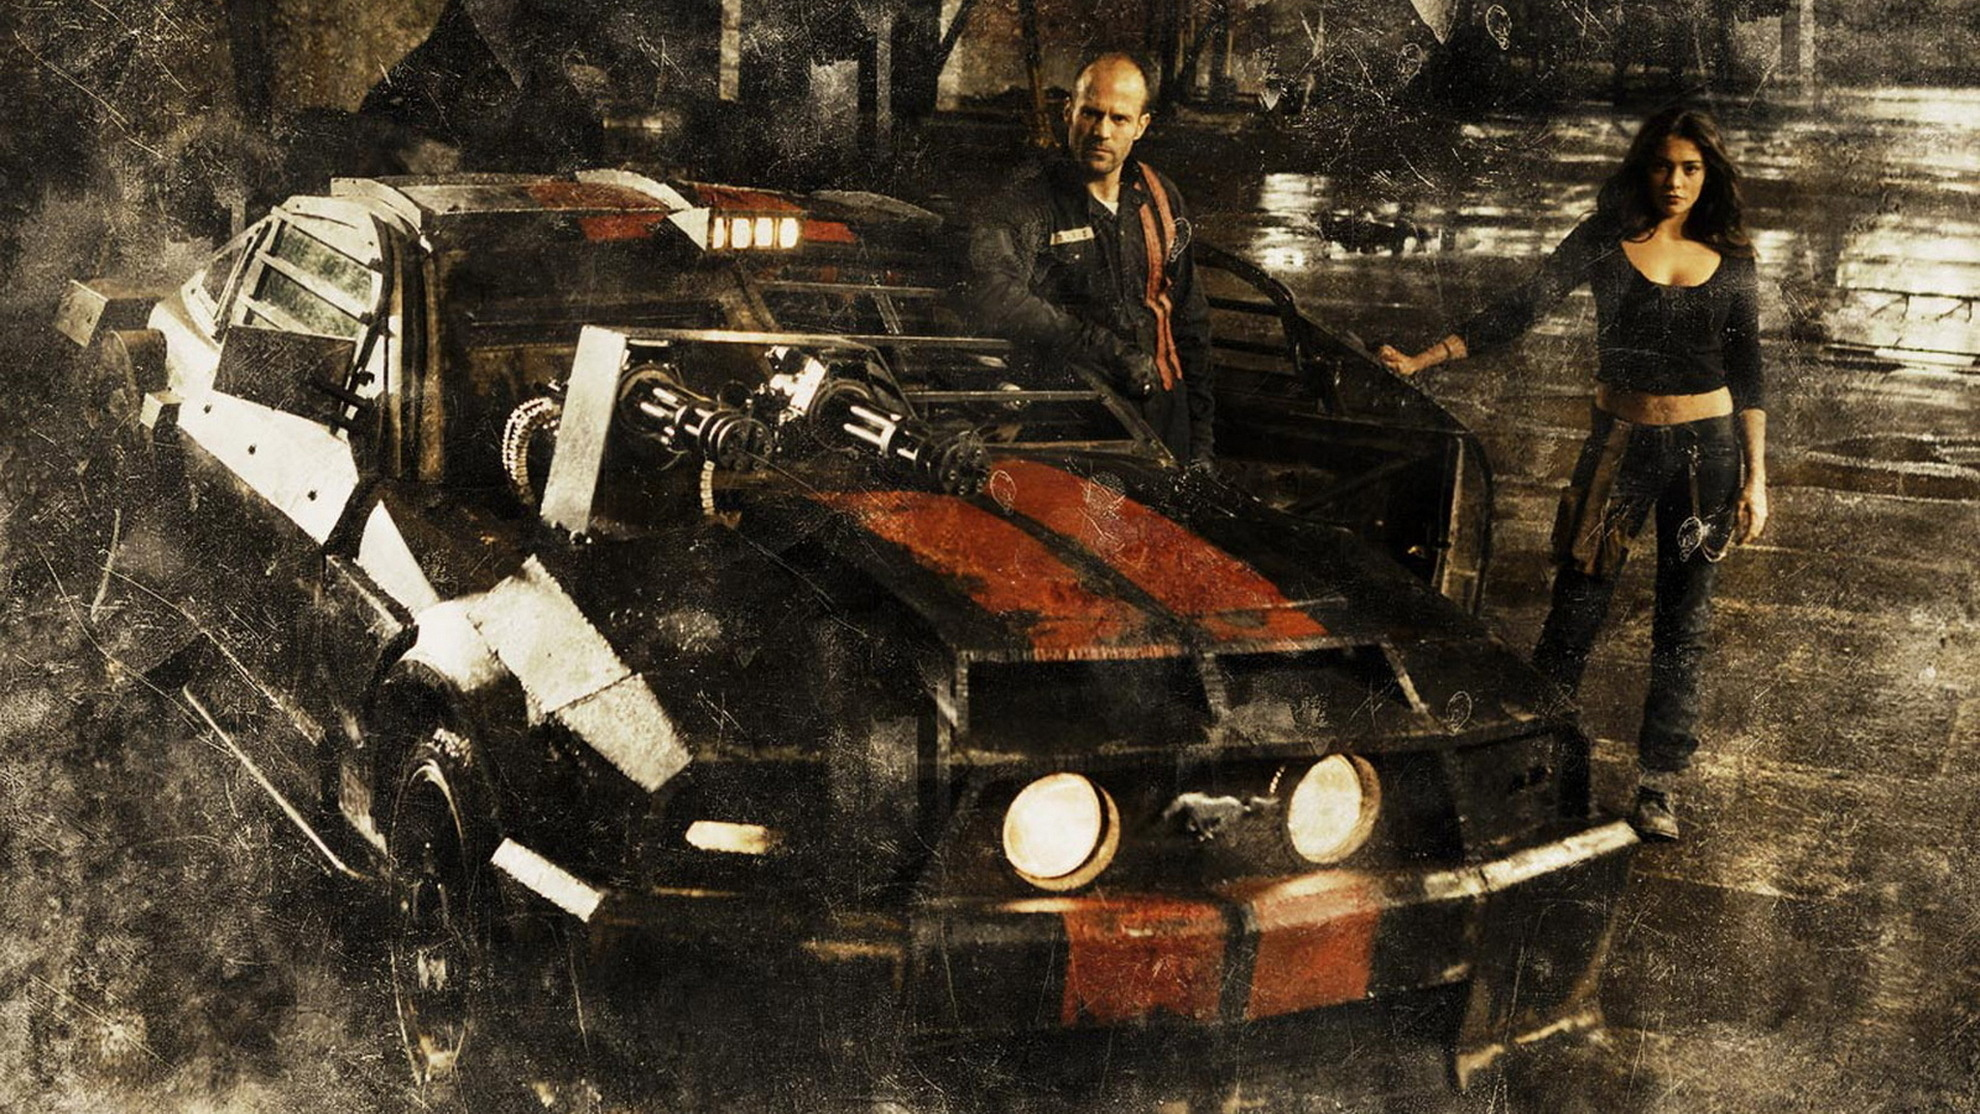 11 death race hd wallpapers | background images - wallpaper abyss